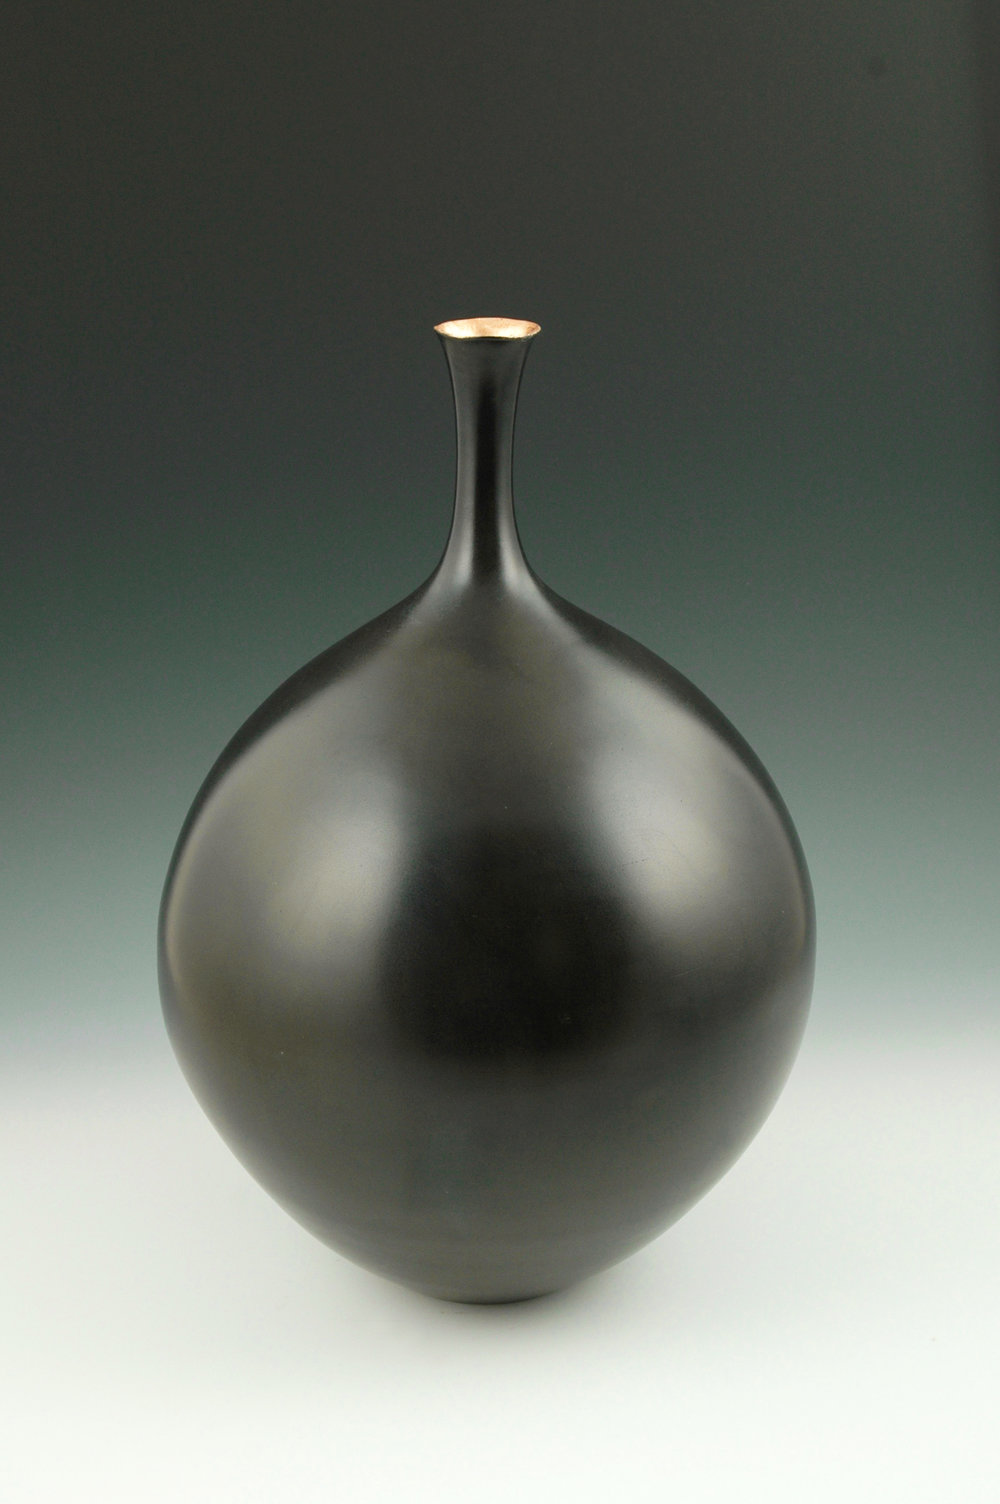 Smoke-fired Vessel with Gold Leaf by Judy Blake